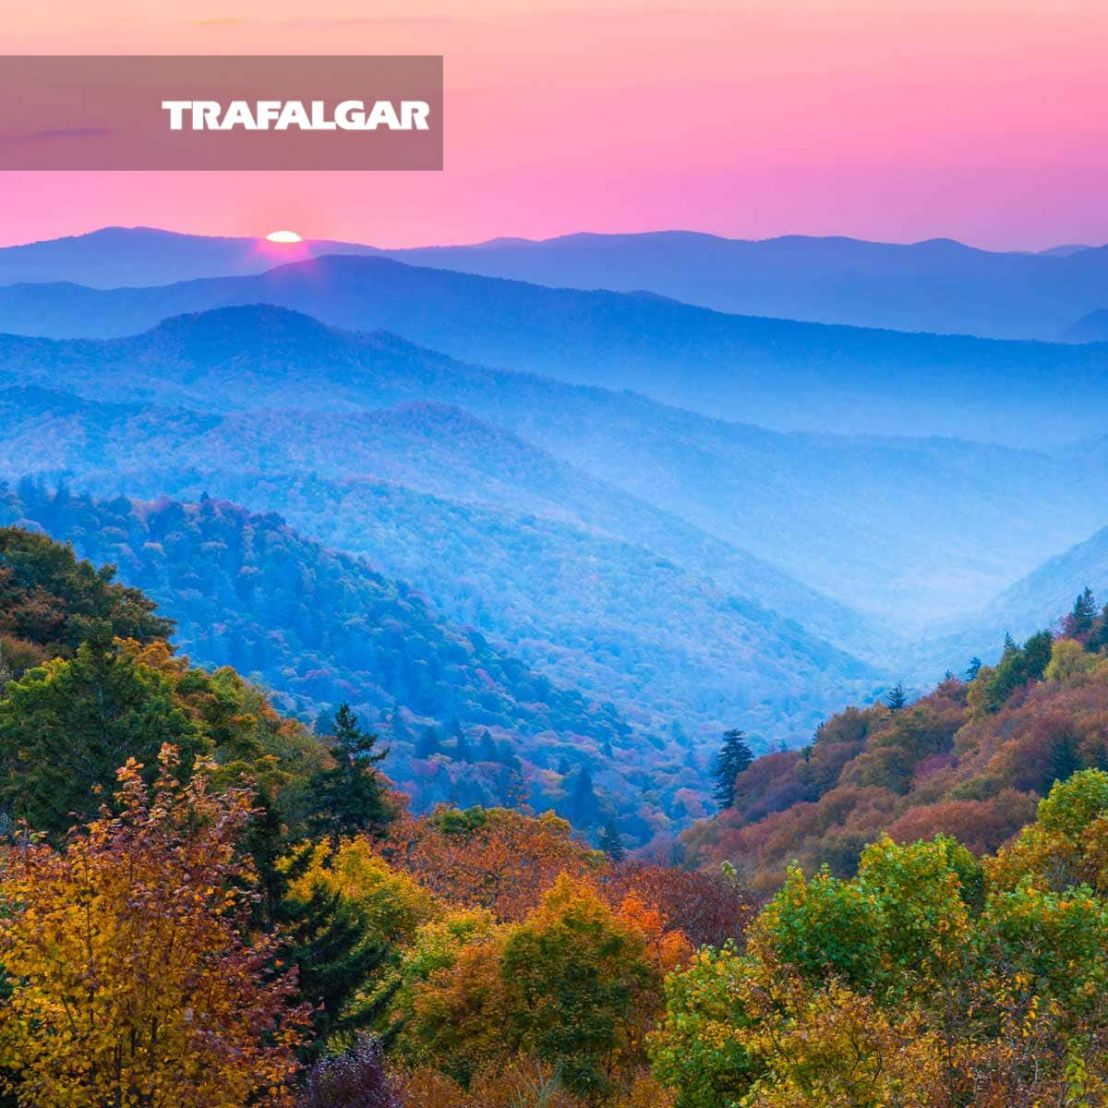 Heart of the South with the Great Smoky Mountains Summer 2020